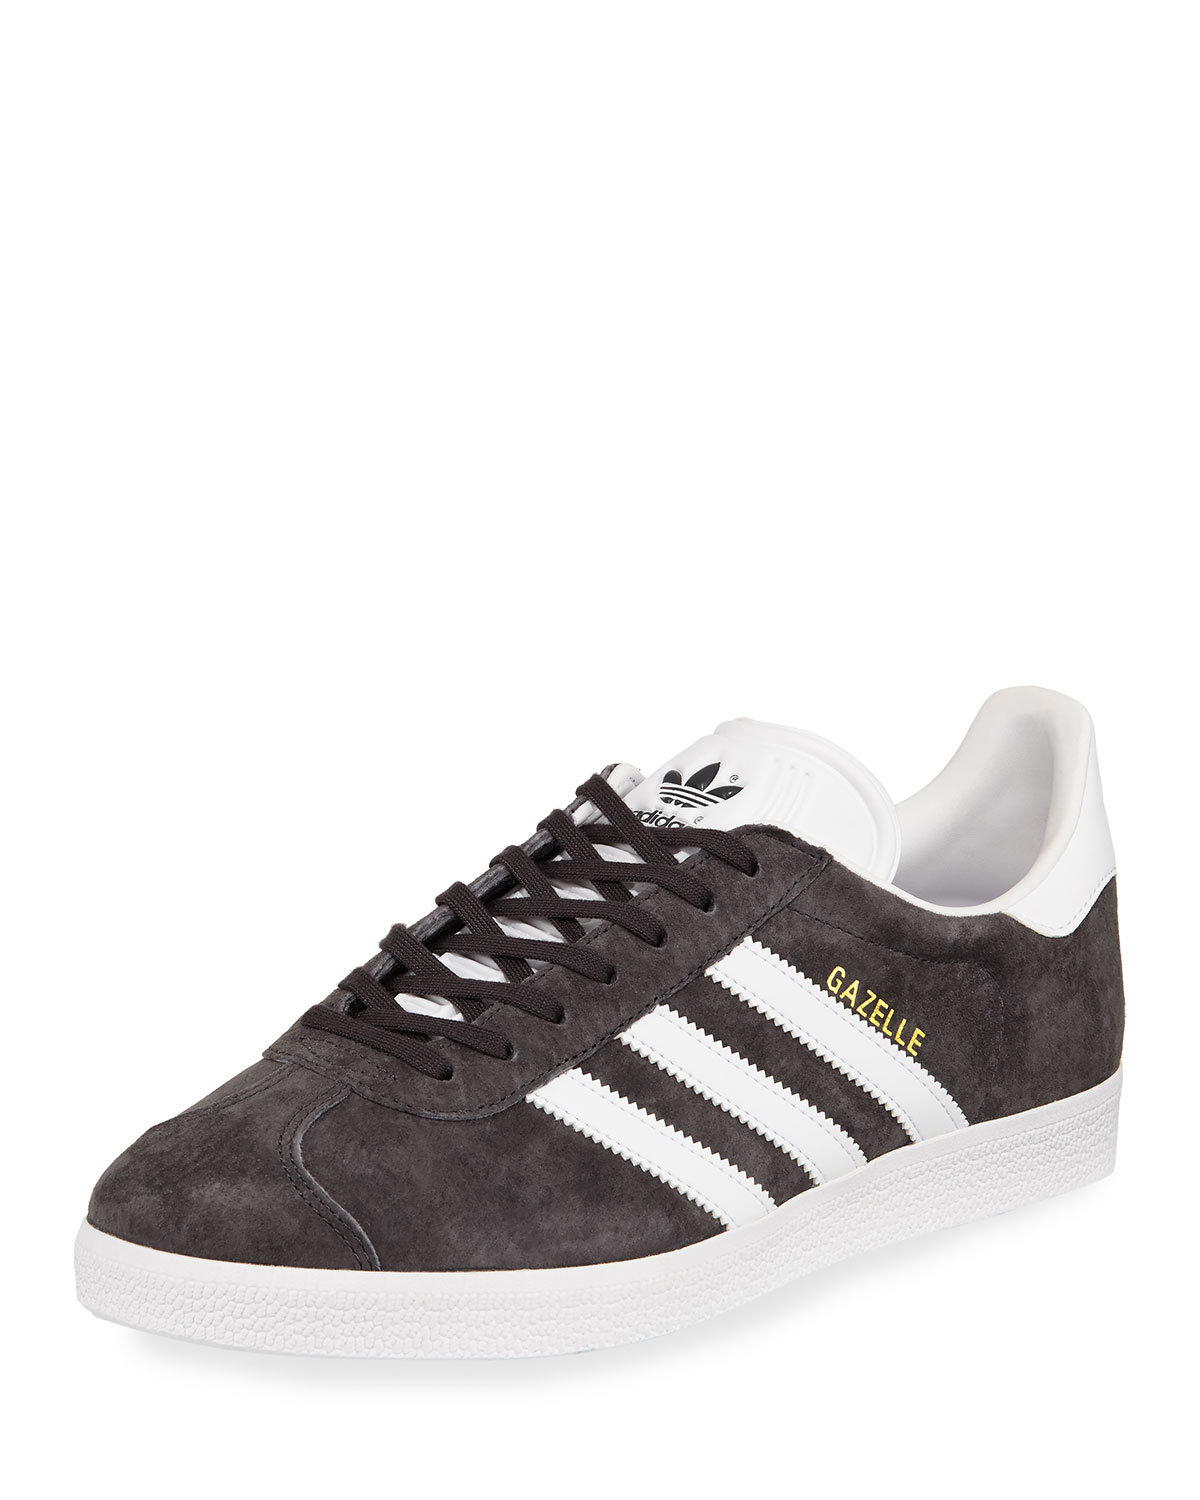 reputable site f1973 ca9f0 AdidasMens Gazelle Original Suede Sneakers, Gray